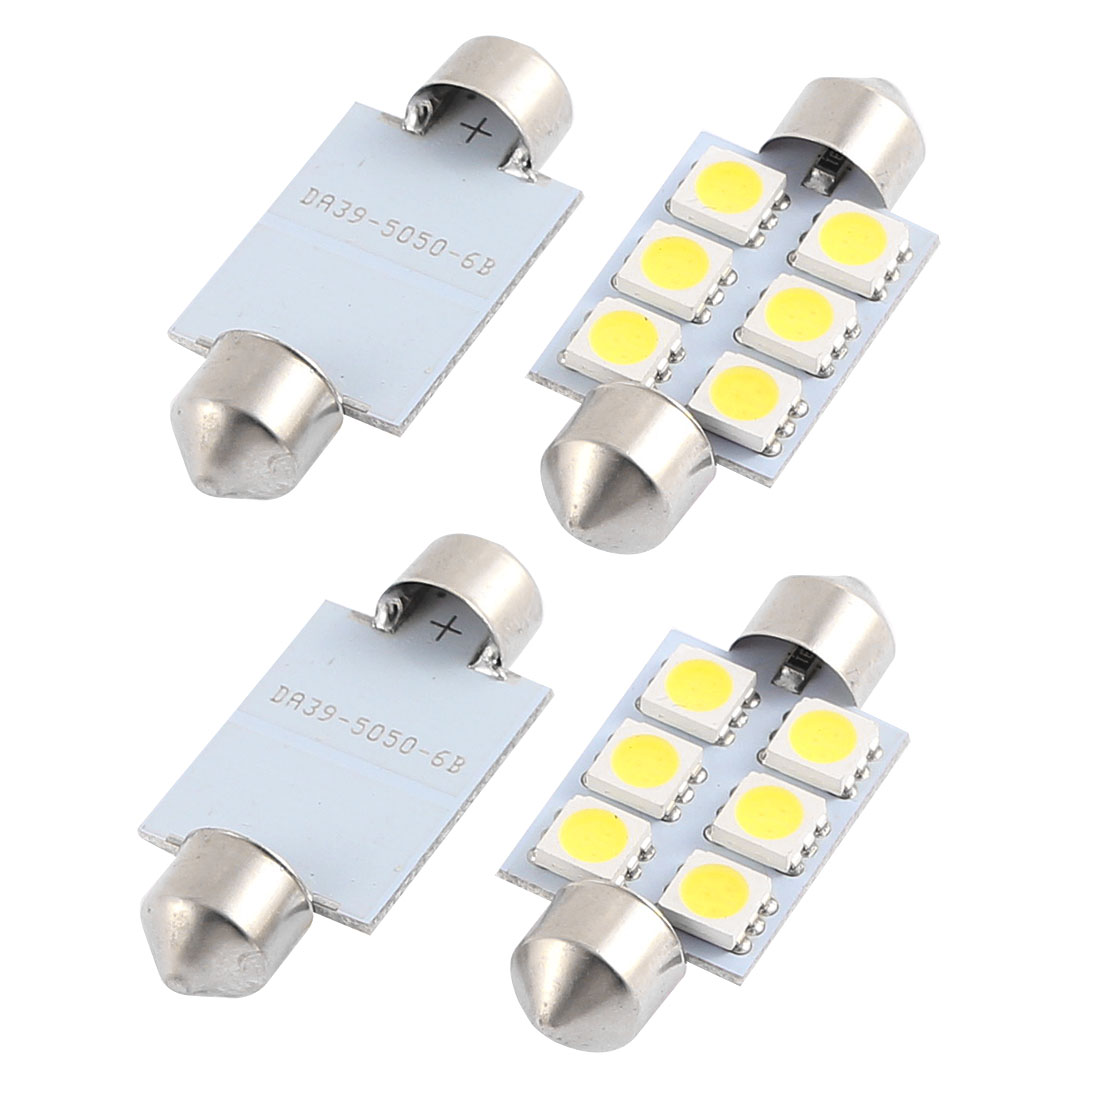 4 x 39MM NUMBER PLATE INTERIOR LIGHT FESTOON BULB 6 LED WHITE 239 c5w